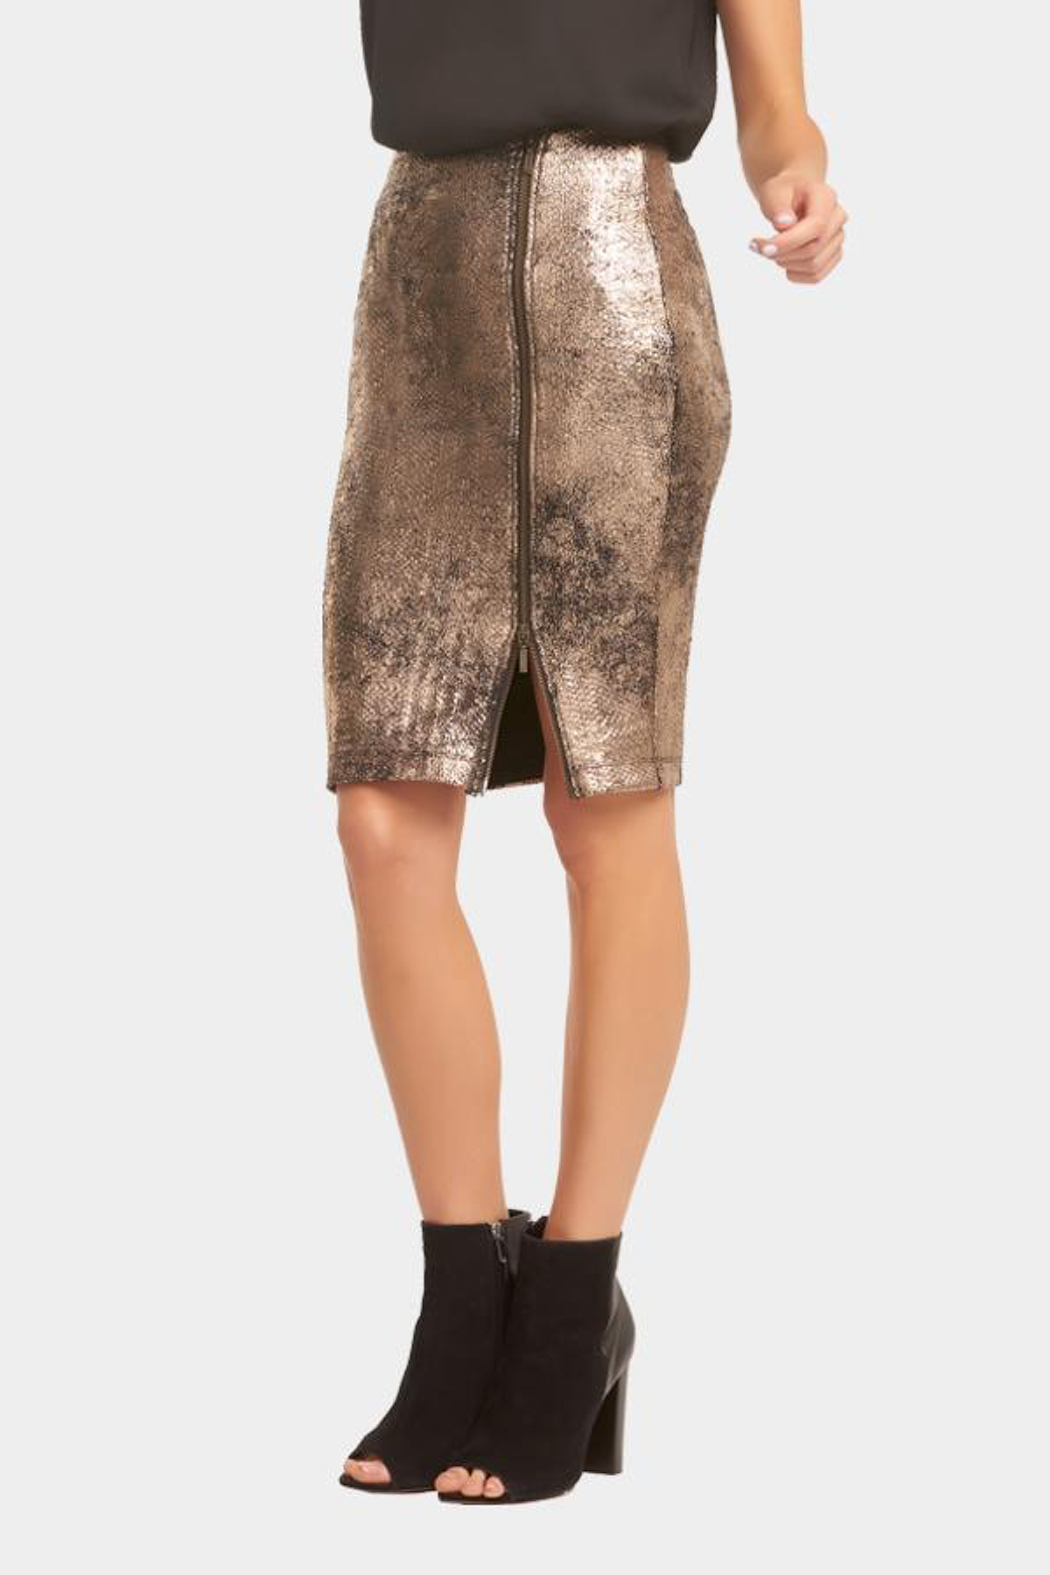 Tart Collections Arietta Skirt - Side Cropped Image